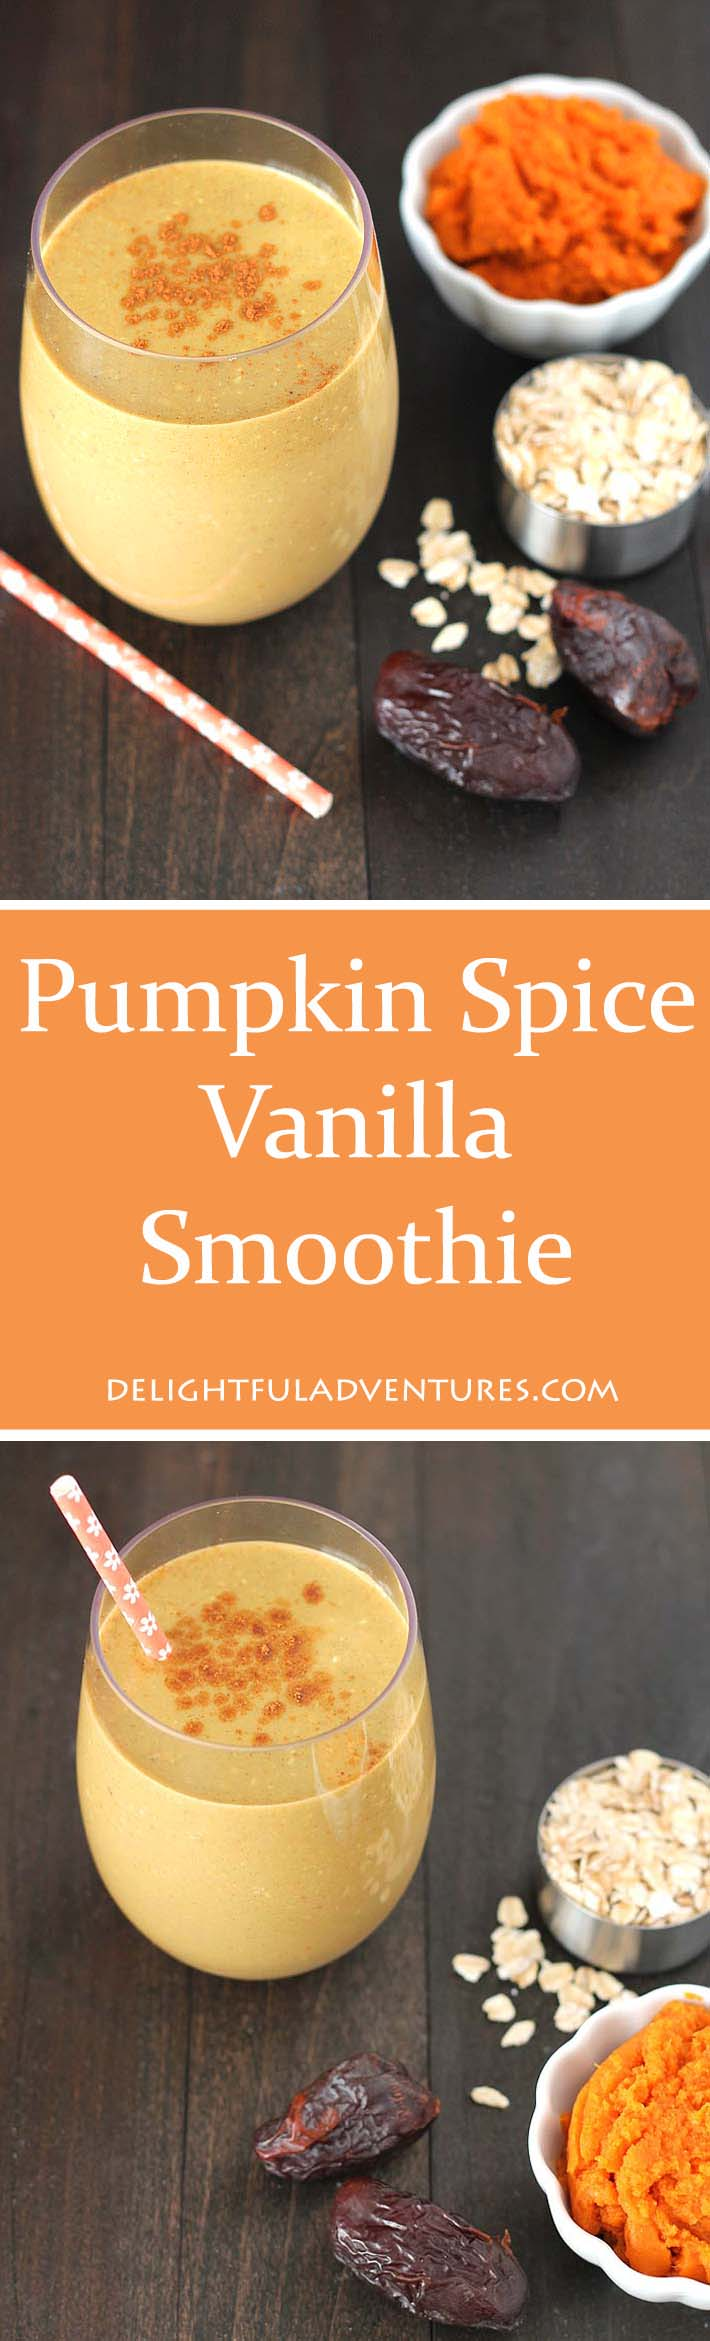 Looking for a healthier version of your favourite coffee drink? Look no further, you've got to try this nutritious, vegan pumpkin spice vanilla smoothie!